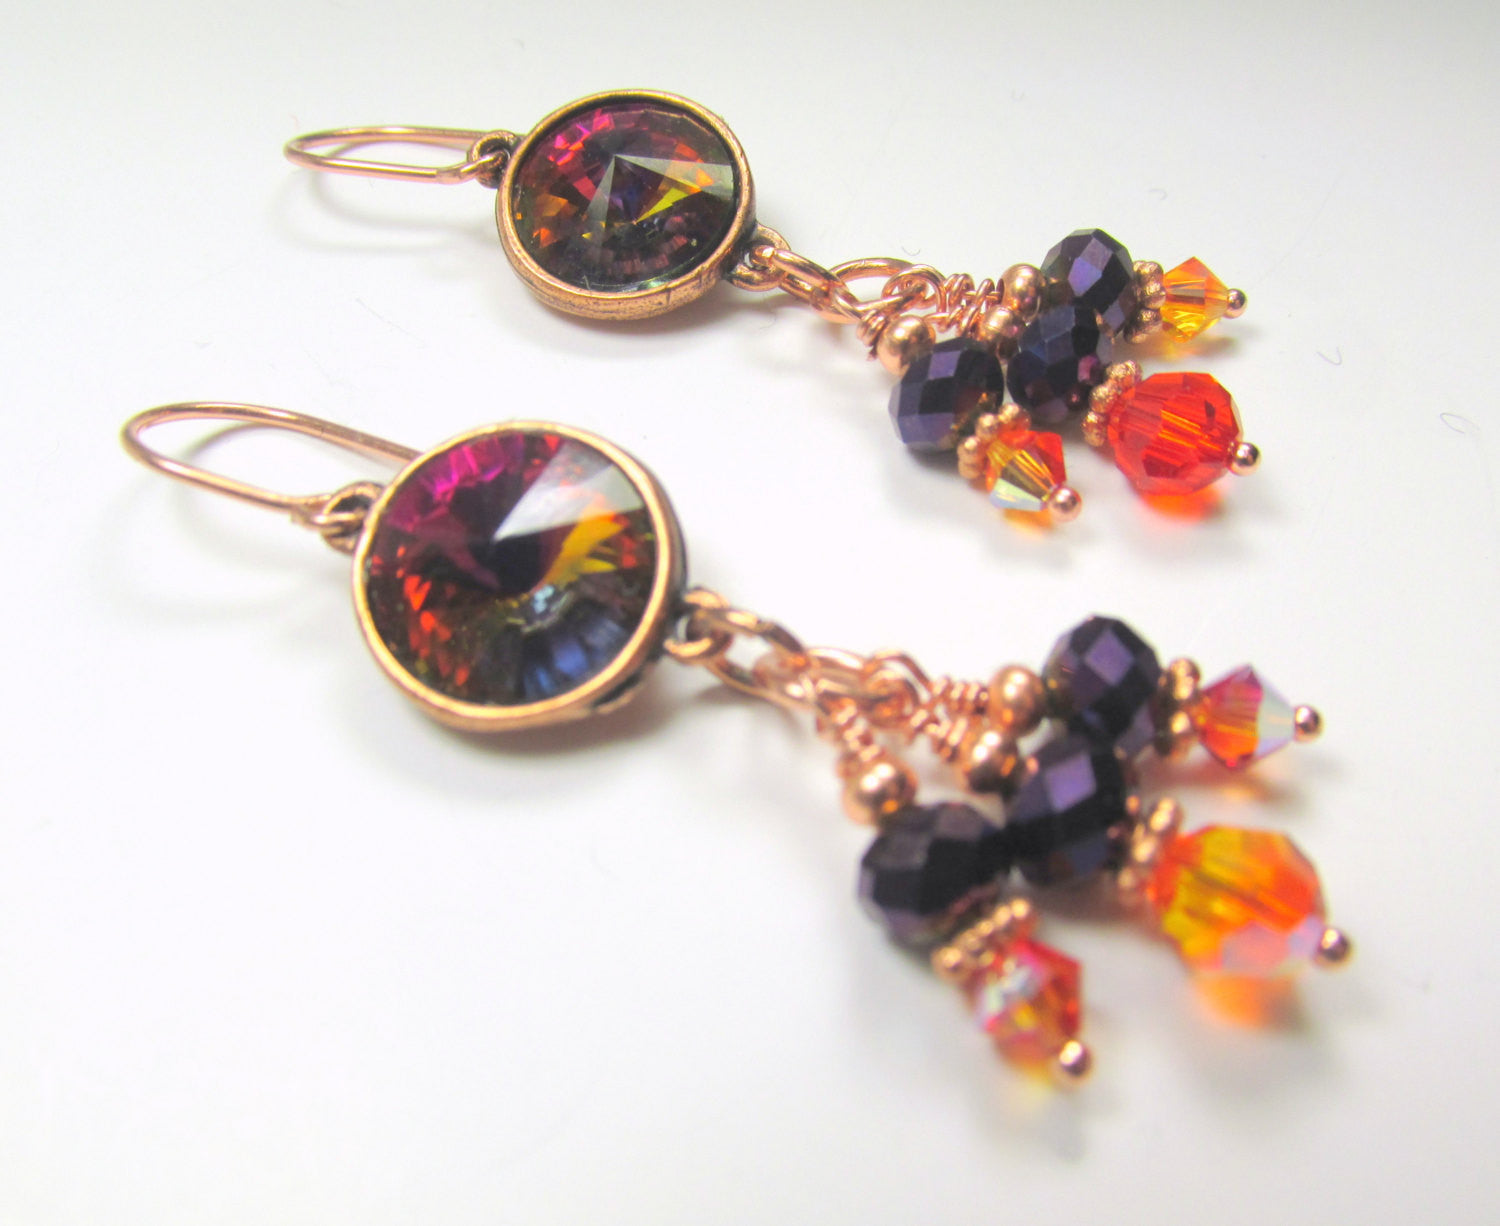 Swarovski Rivoli Volcano Crystal Earrings set in Copper Settings with Fire Opal Orange and Metallic Purple Crystals - Odyssey Creations